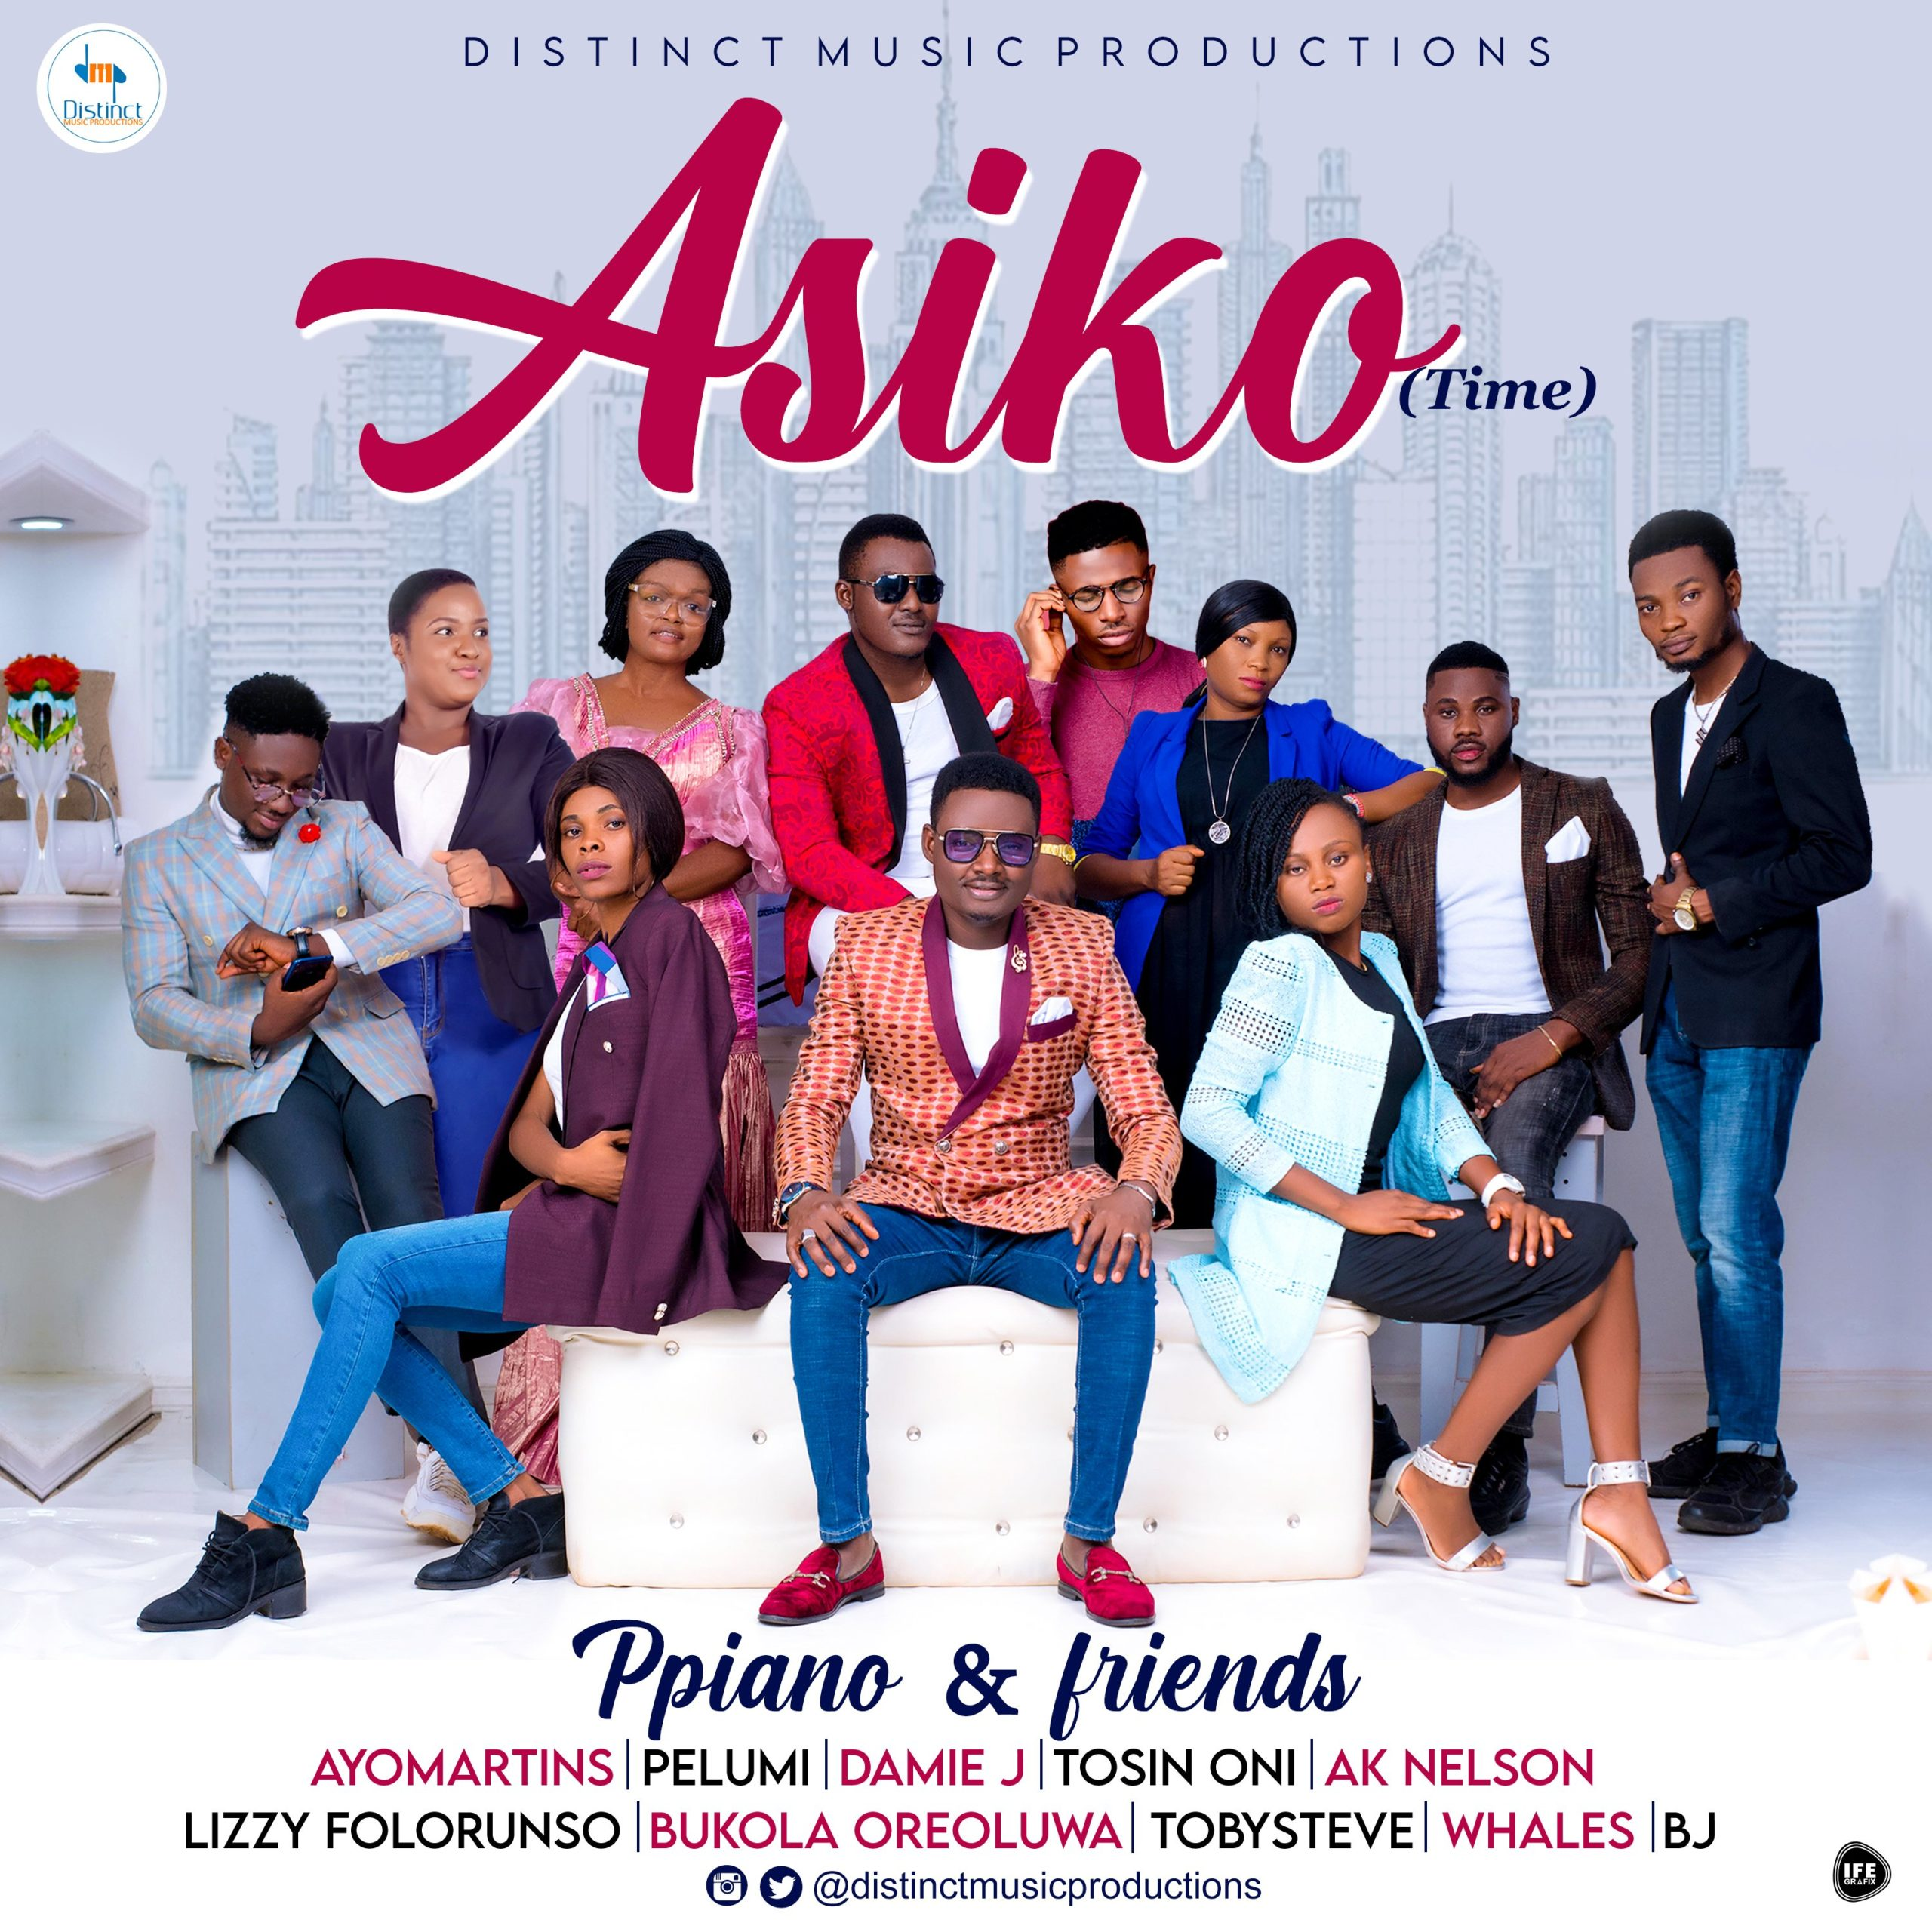 DOWNLOAD Music: Ppiano And Friends – ASIKO (Time)